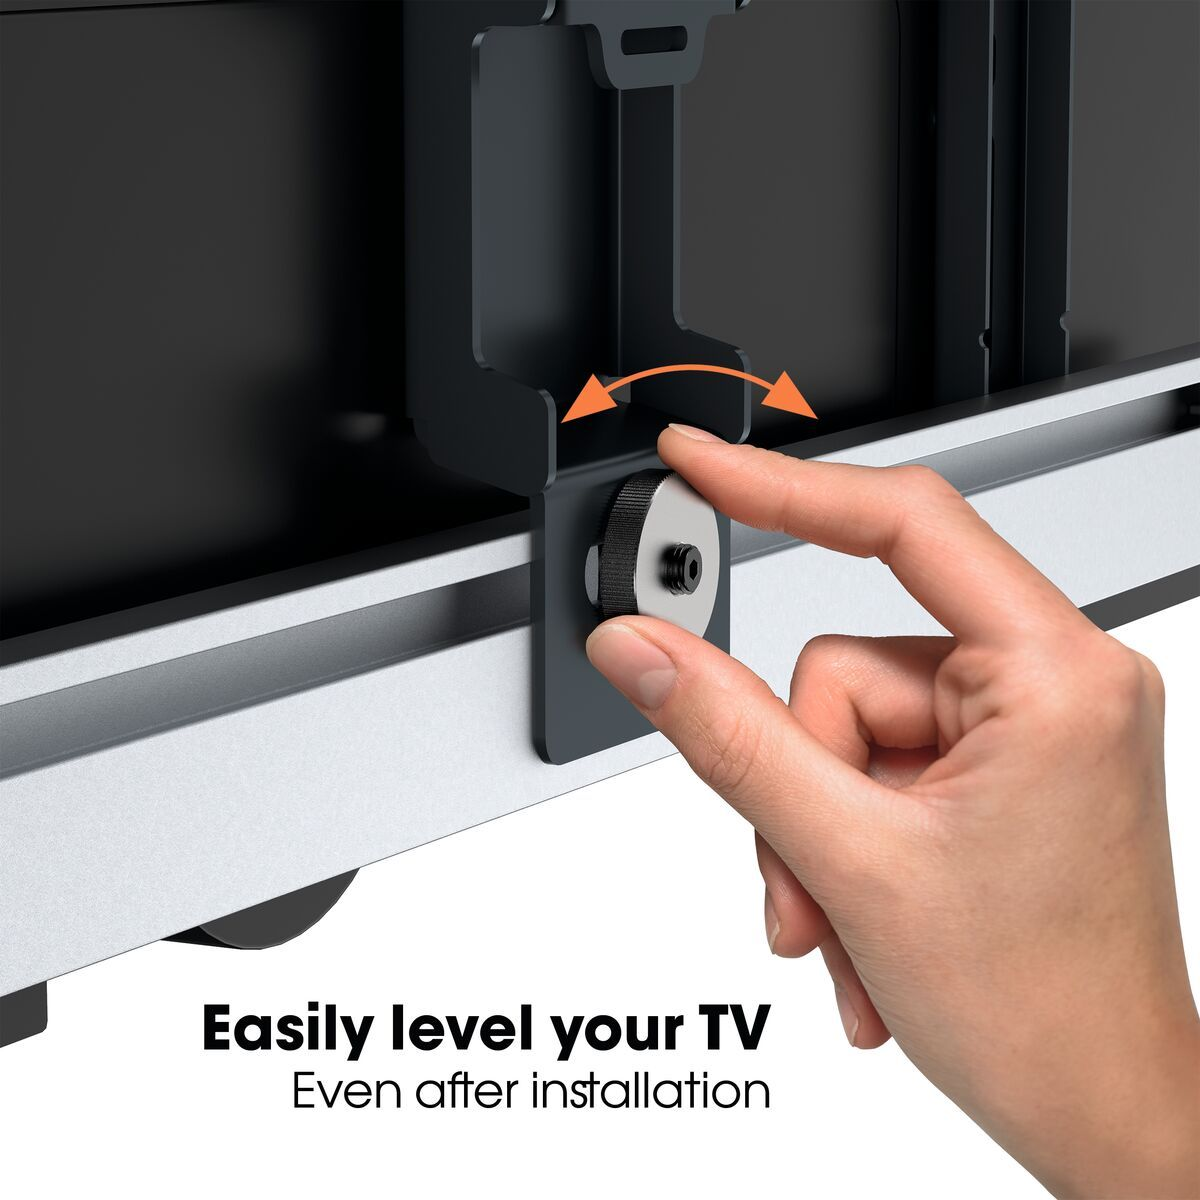 Vogel's THIN 546 ExtraThin Full-Motion TV Wall Mount for OLED TVs (black) - Suitable for 40 up to 65 inch TVs - Full motion (up to 180°) - - USP